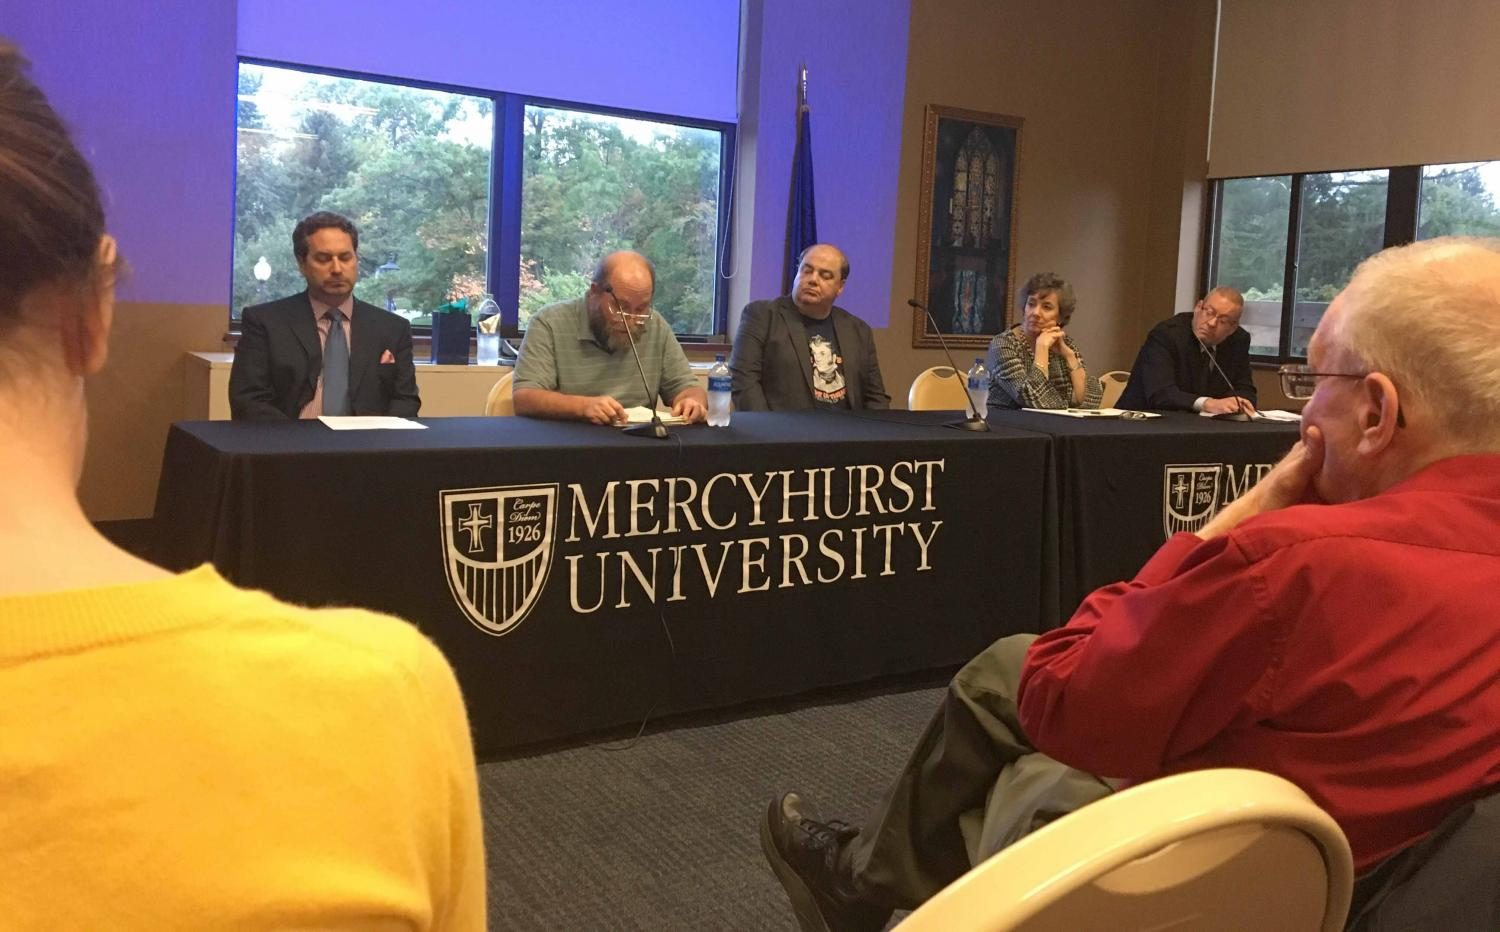 Mercyhurst+holds+panel+to+discuss+ethics%2C+journalism